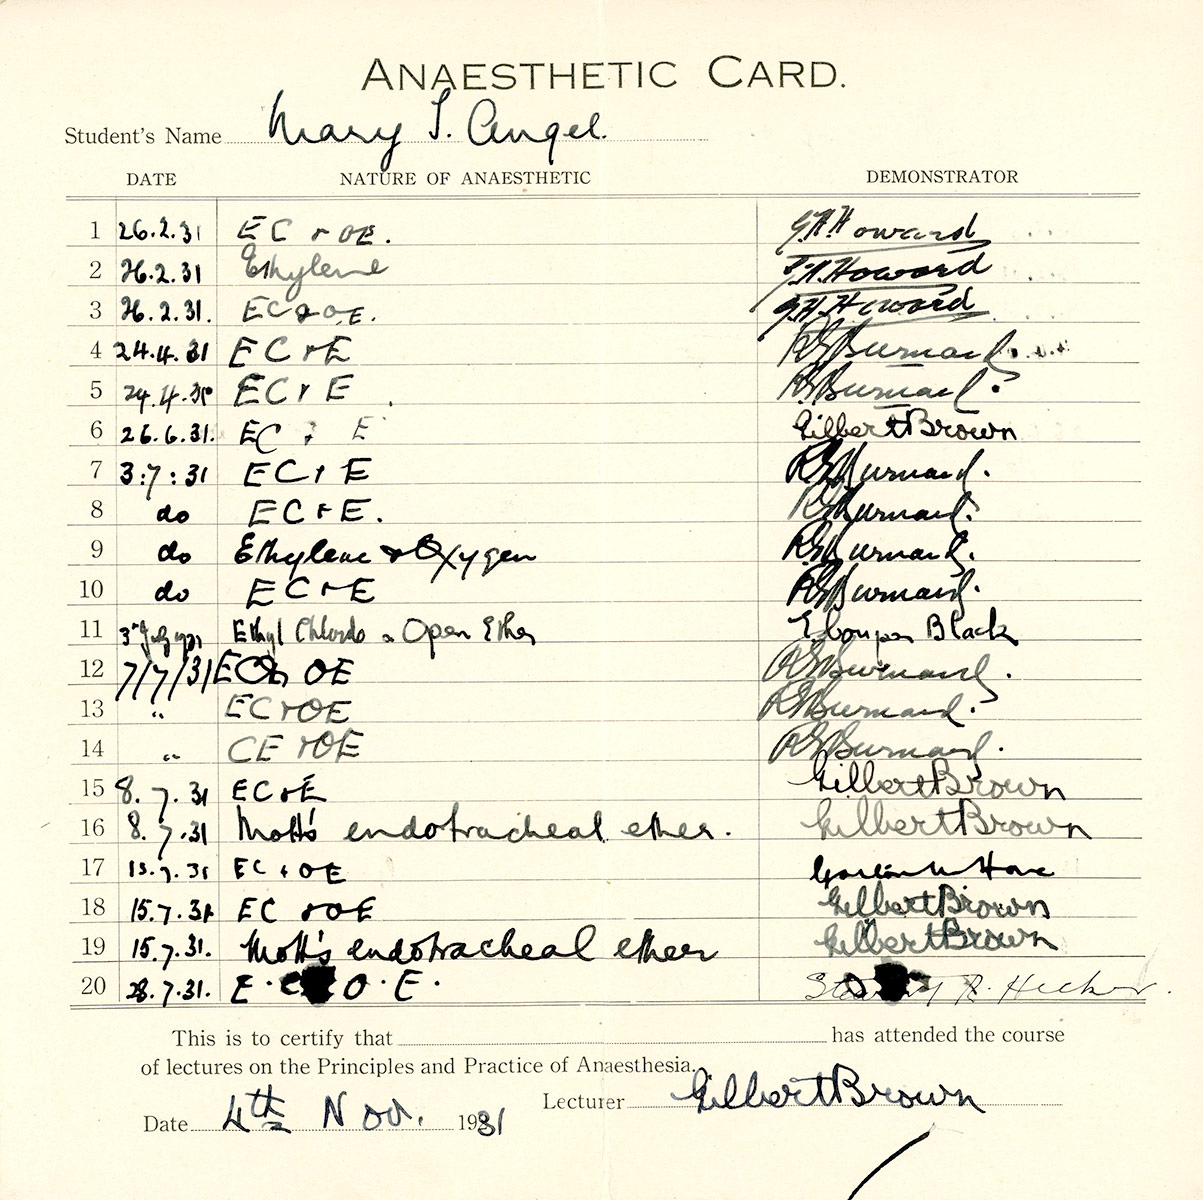 Anaesthetic Card - Mary T. Angel